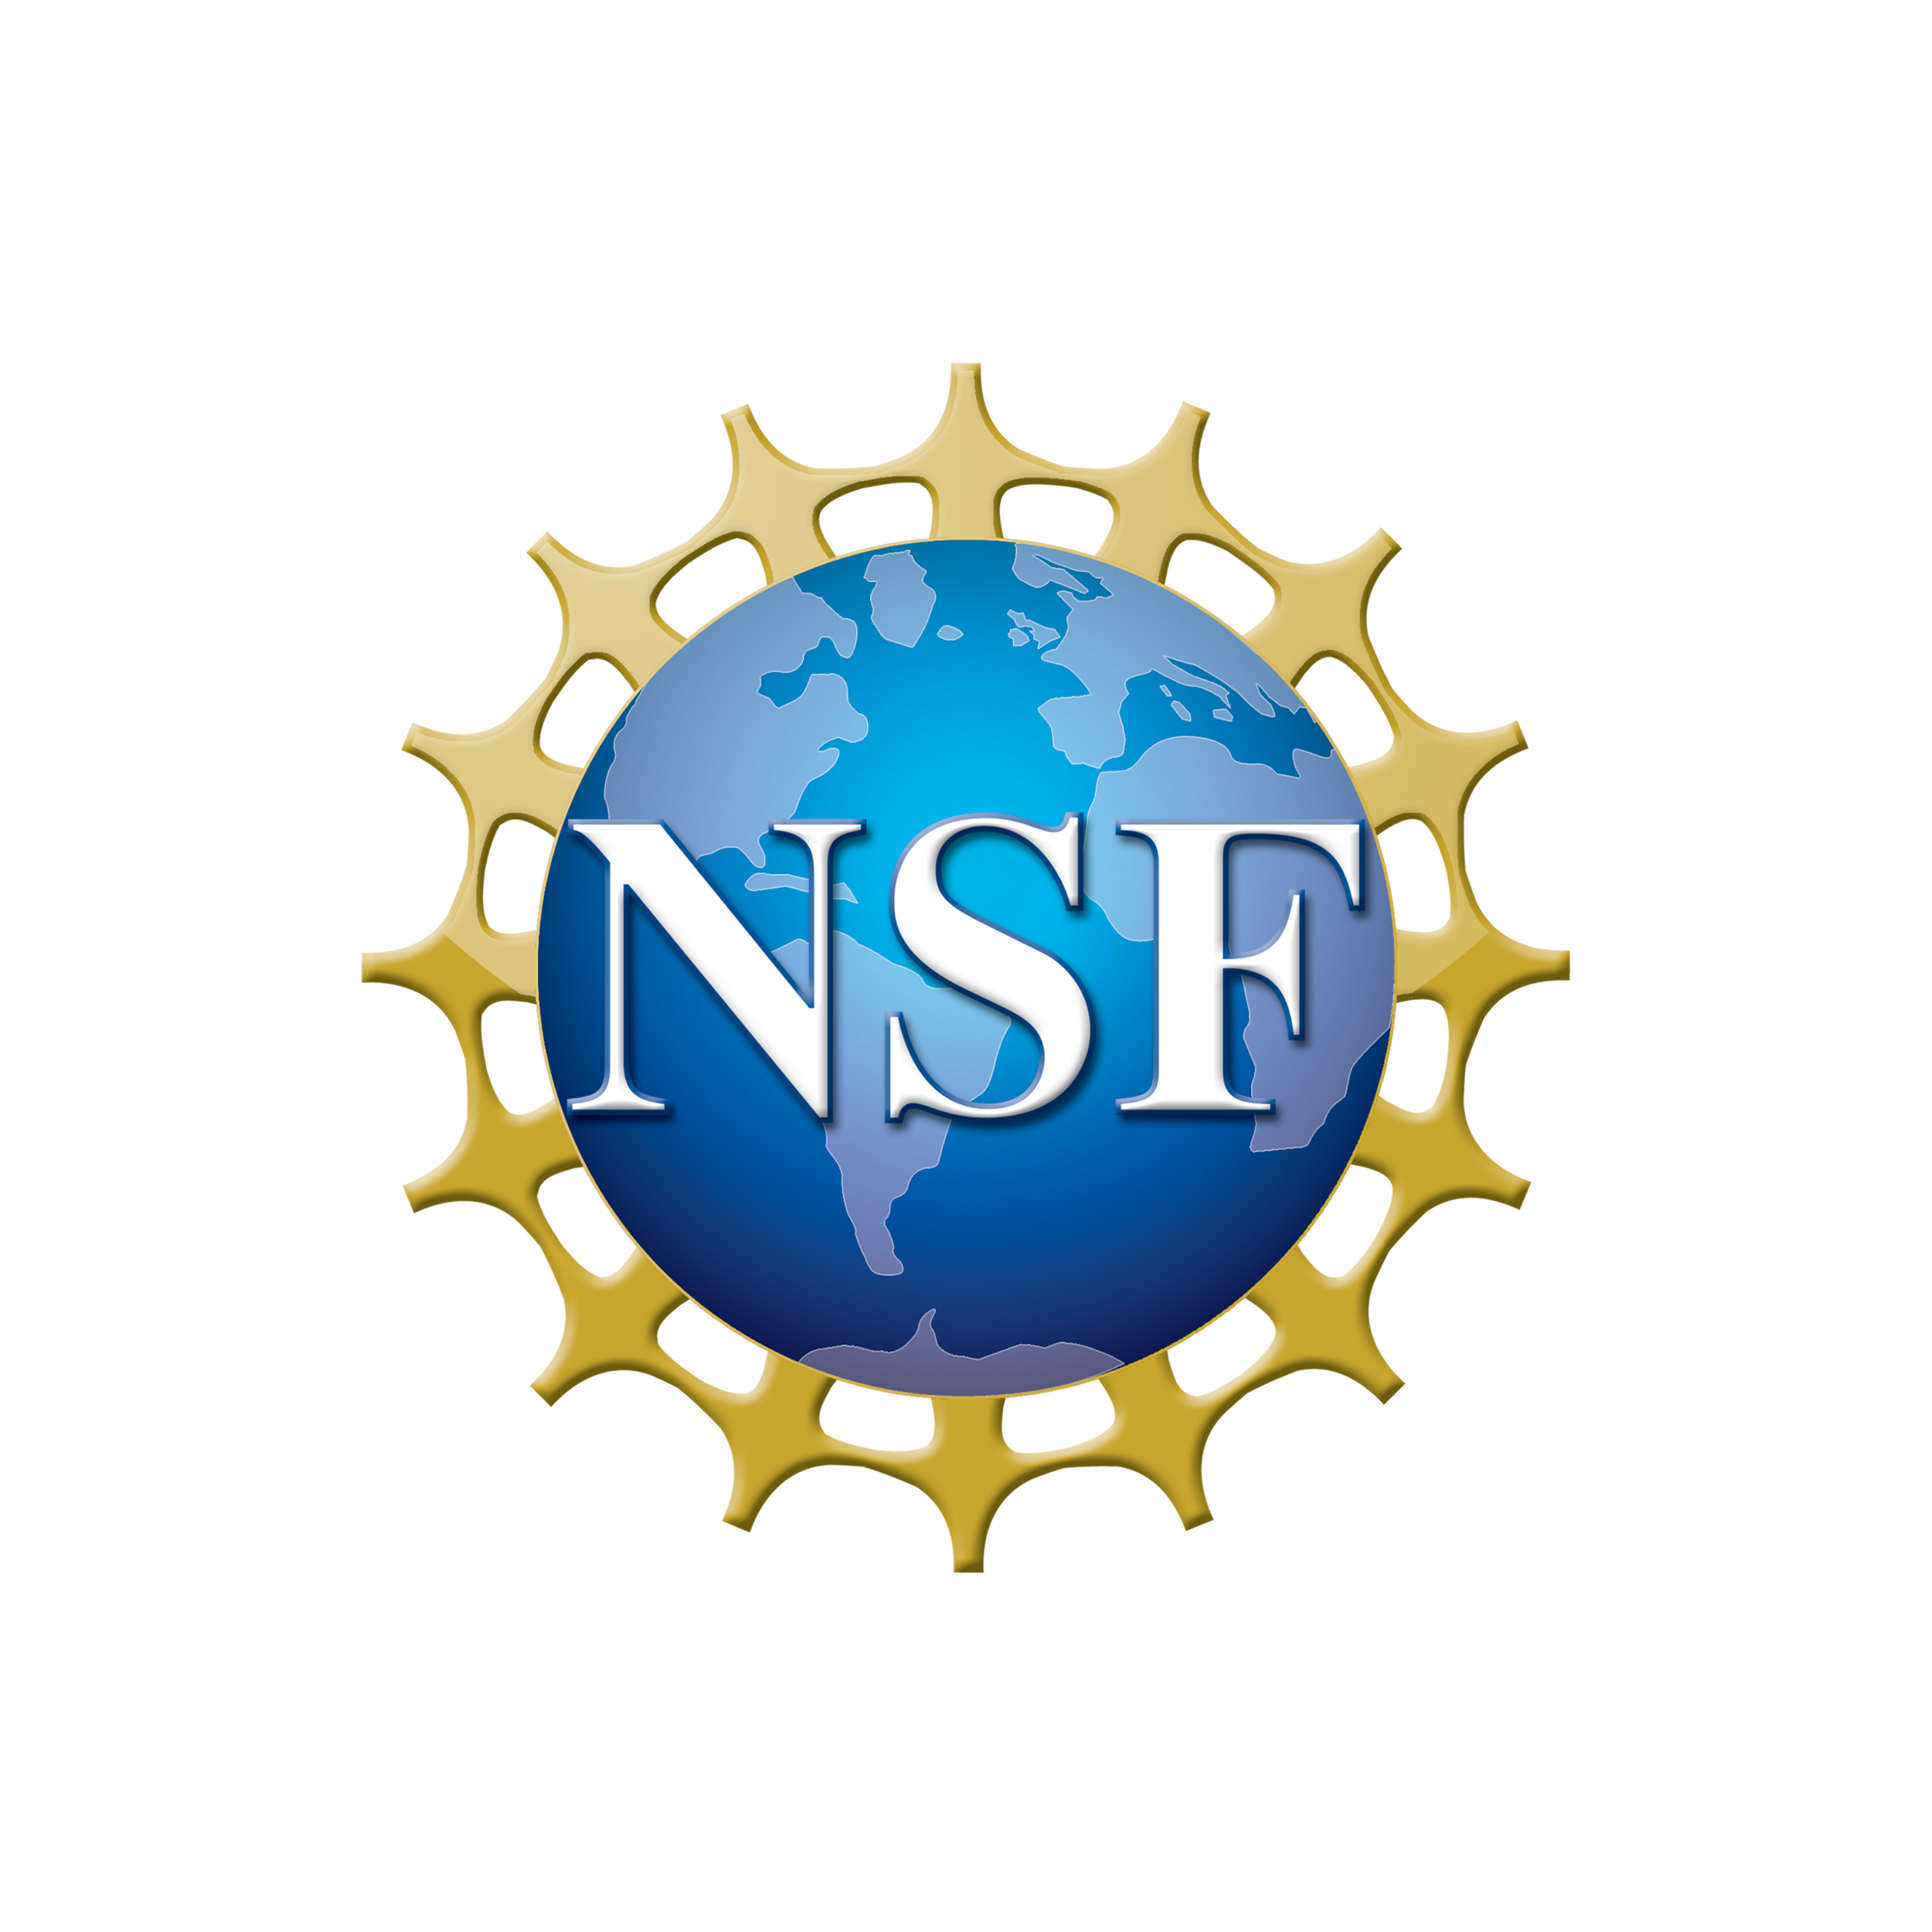 nsf smallest.png